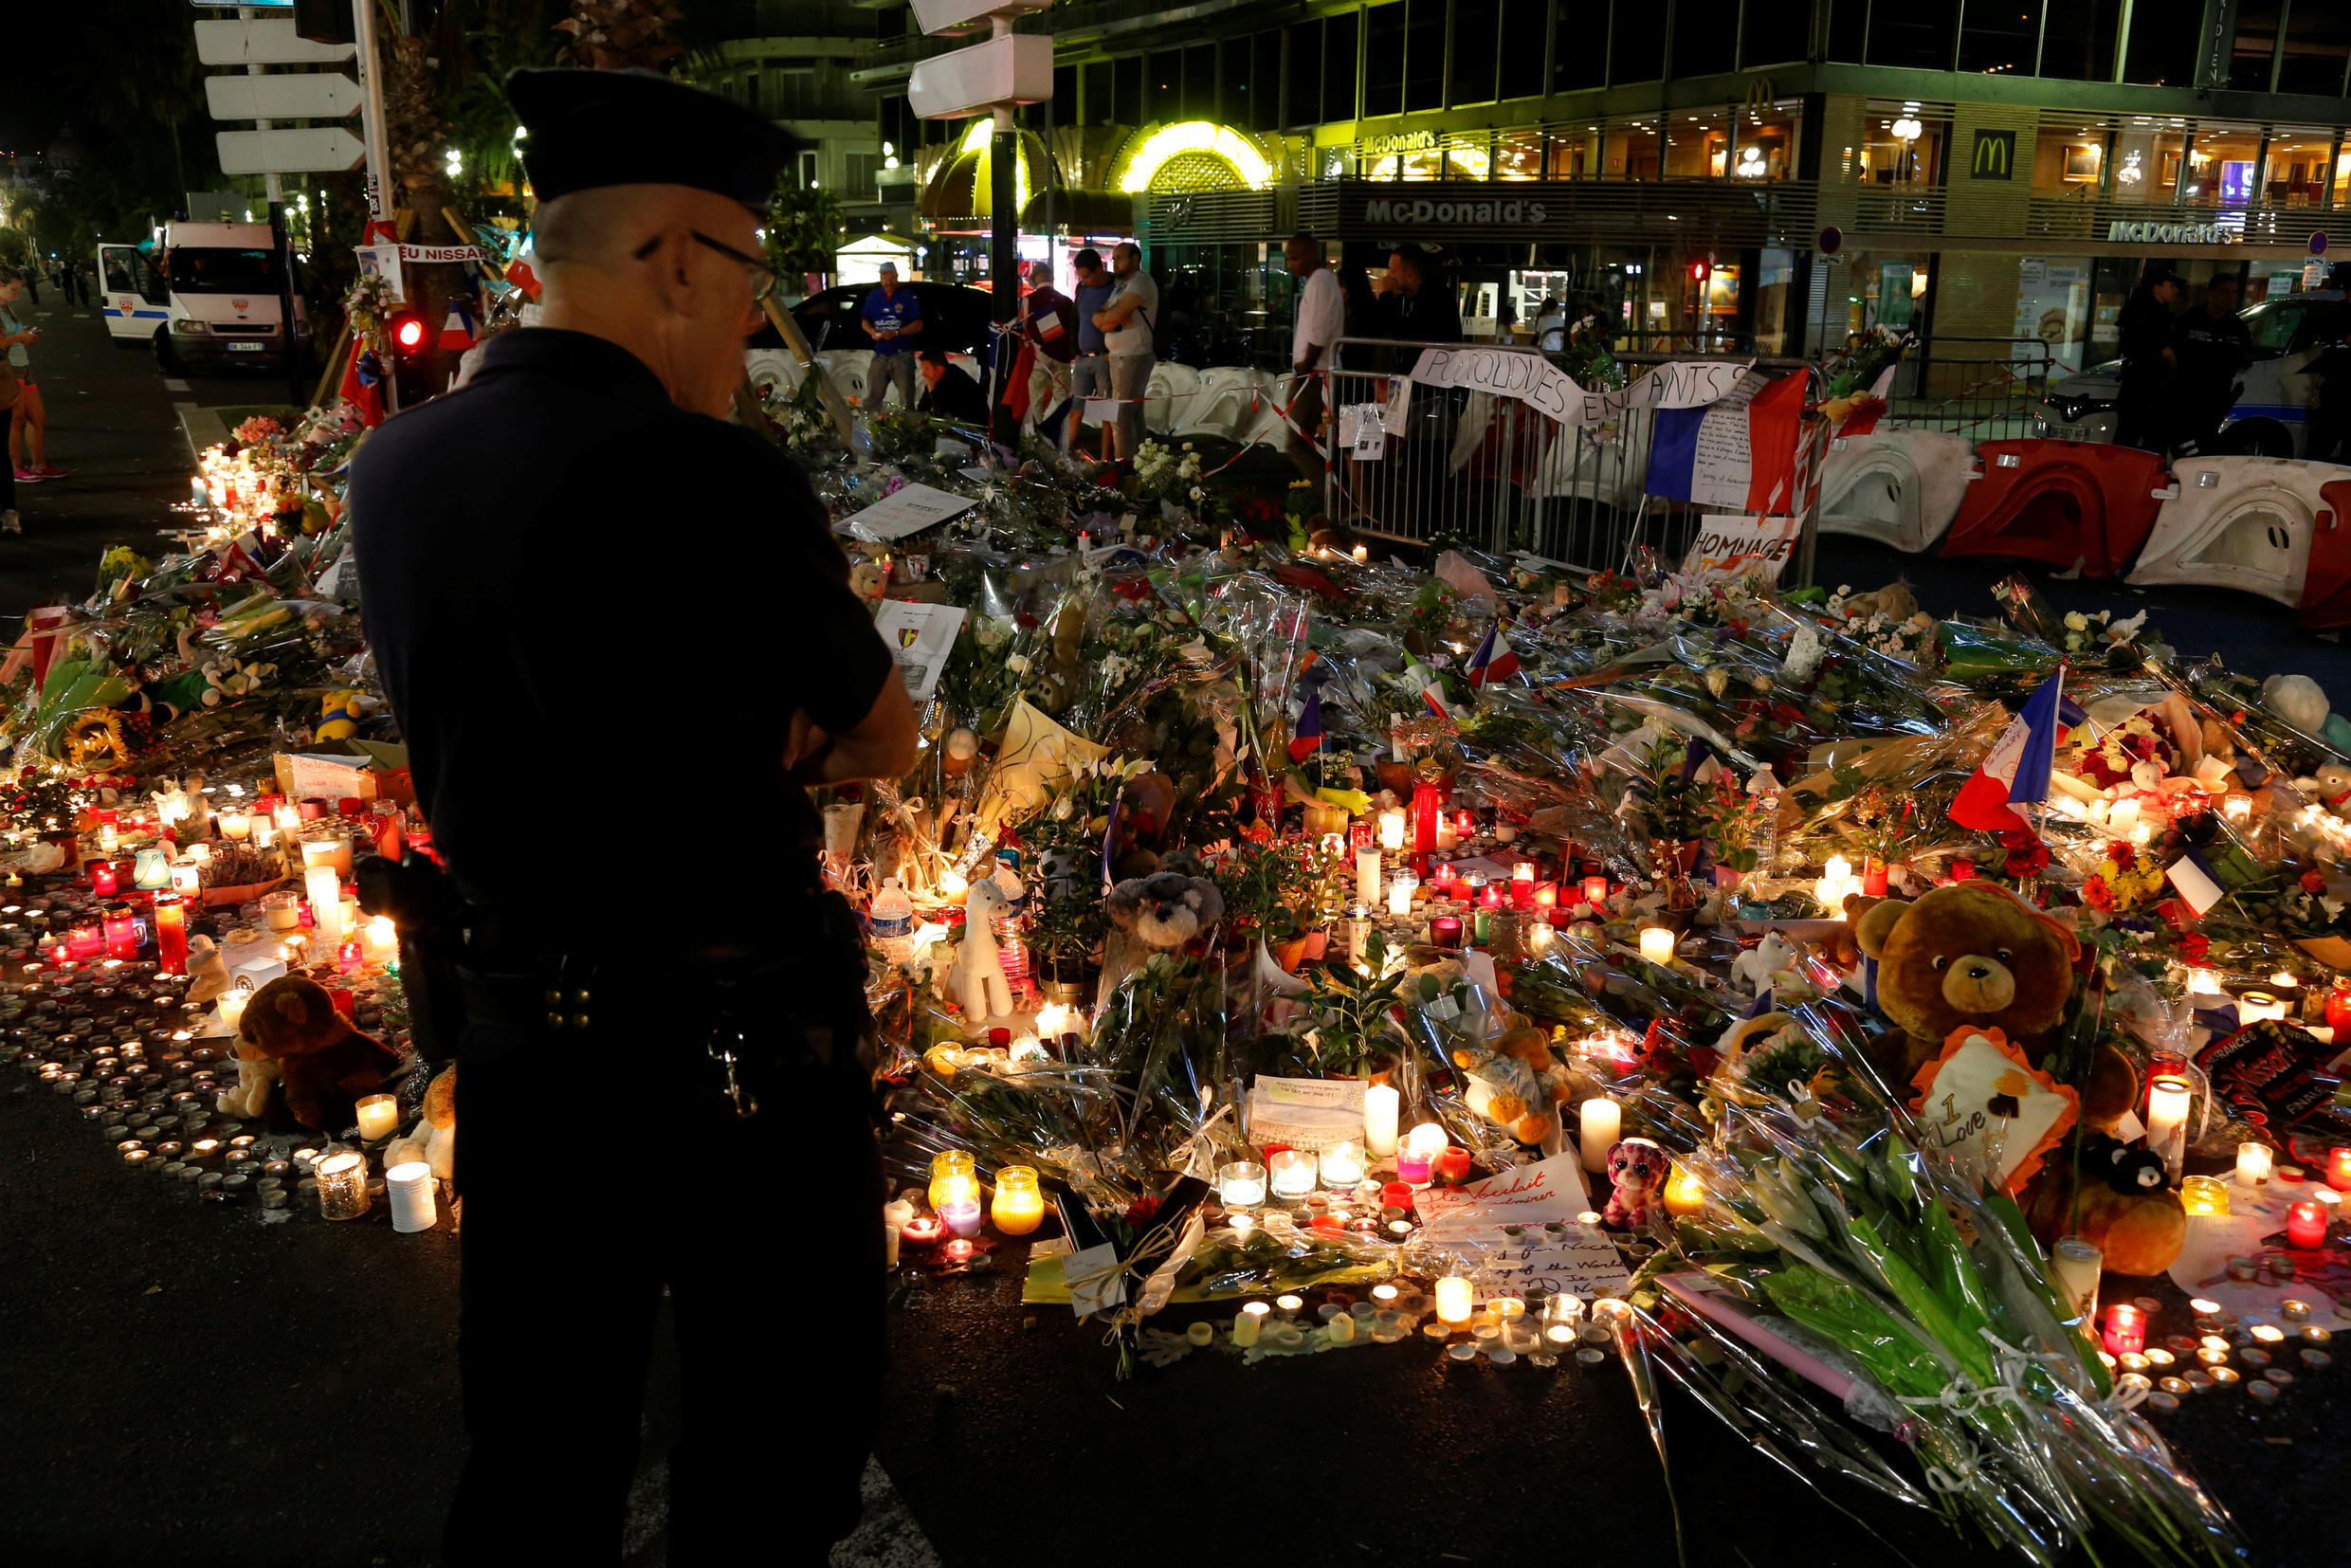 People react near flowers placed on the road in tribute to victims of the attack in Nice.